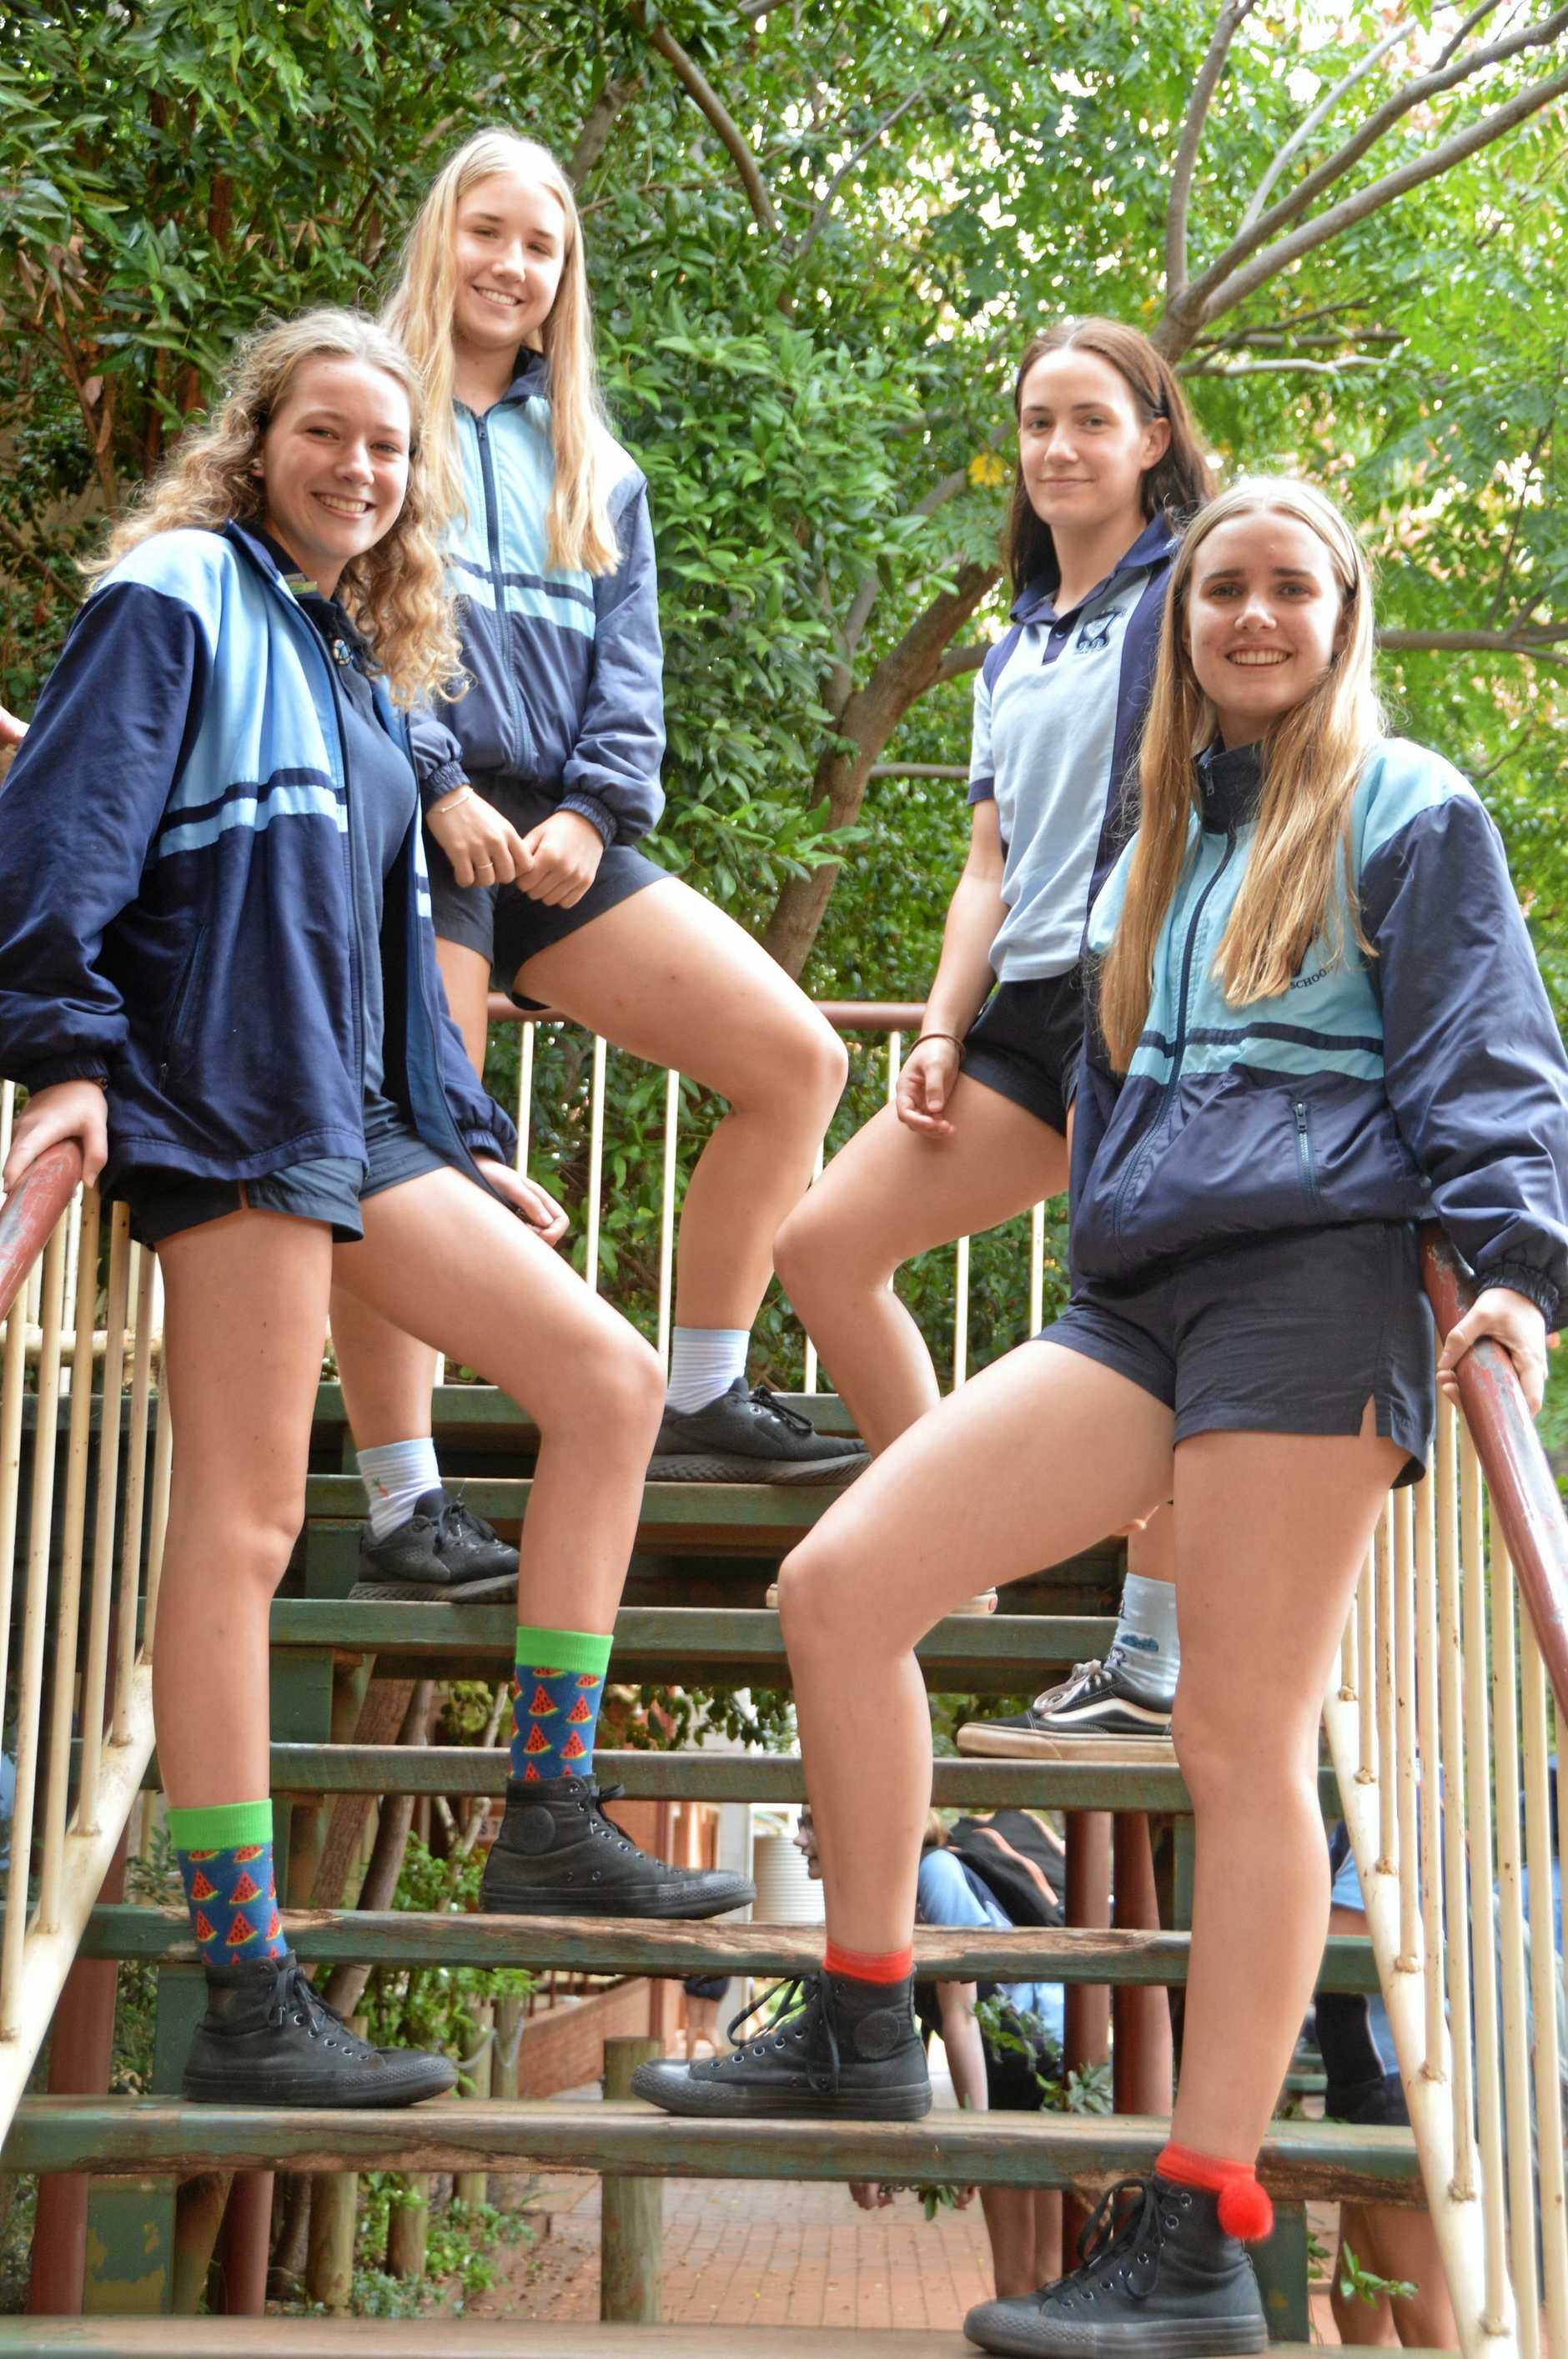 SUPPORTING THEIR OWN: Kingaroy State High School students Rayne Hunt, Laura Tessmann, Taylah Favier and Emma Stewart sport crazy socks to raise funds for their classmate Kalila.